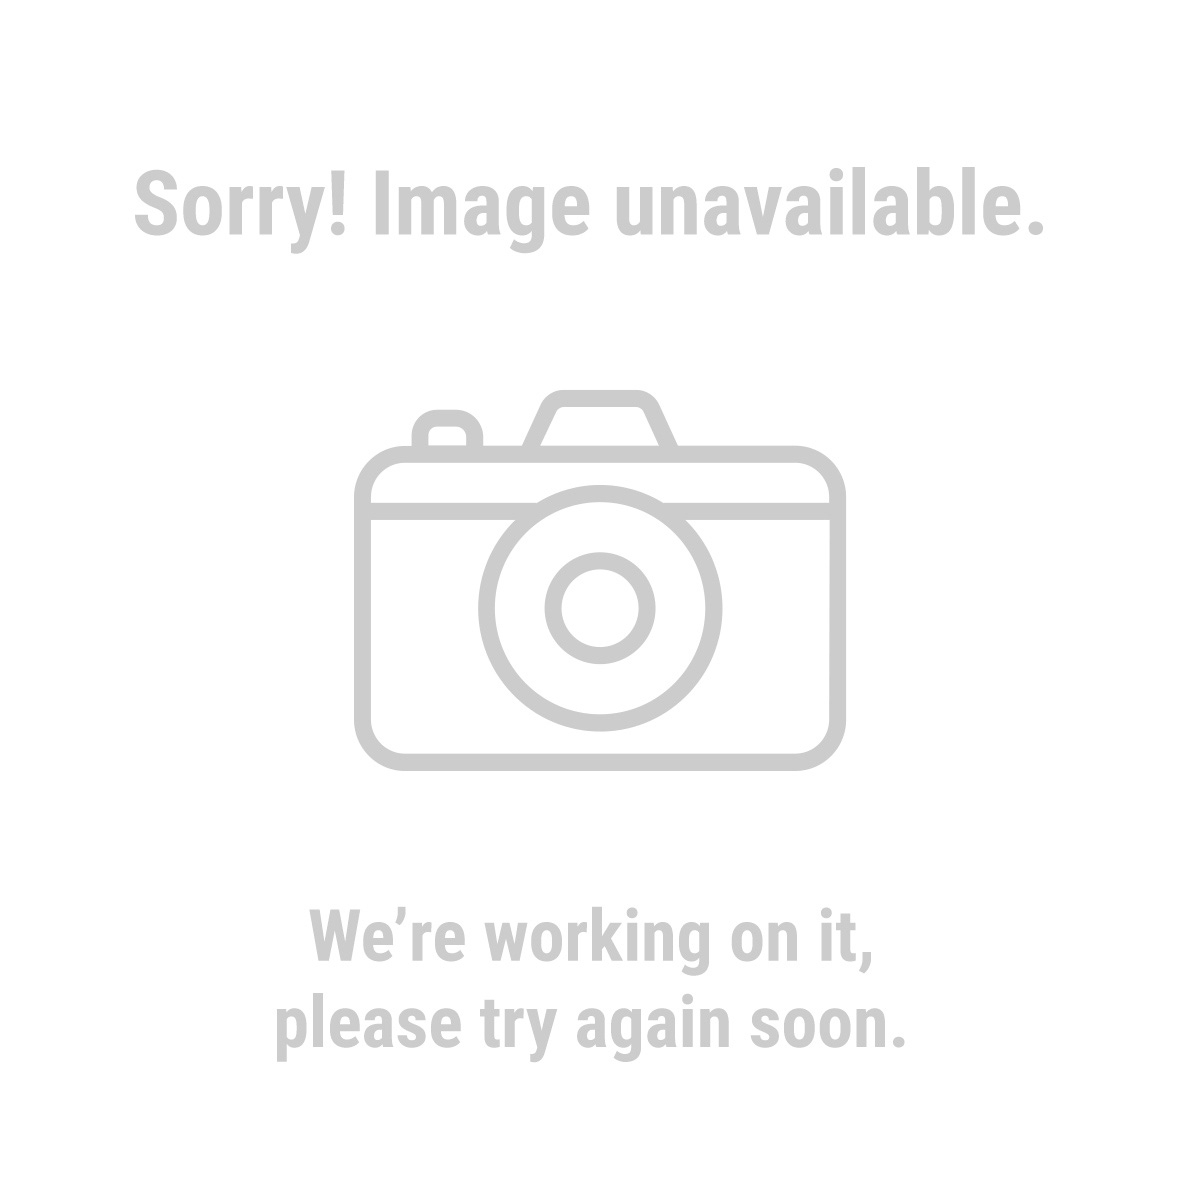 Warrior® 69615 5 Piece 4-1/2 in. 36 Grit Resin Fiber Sanding Discs